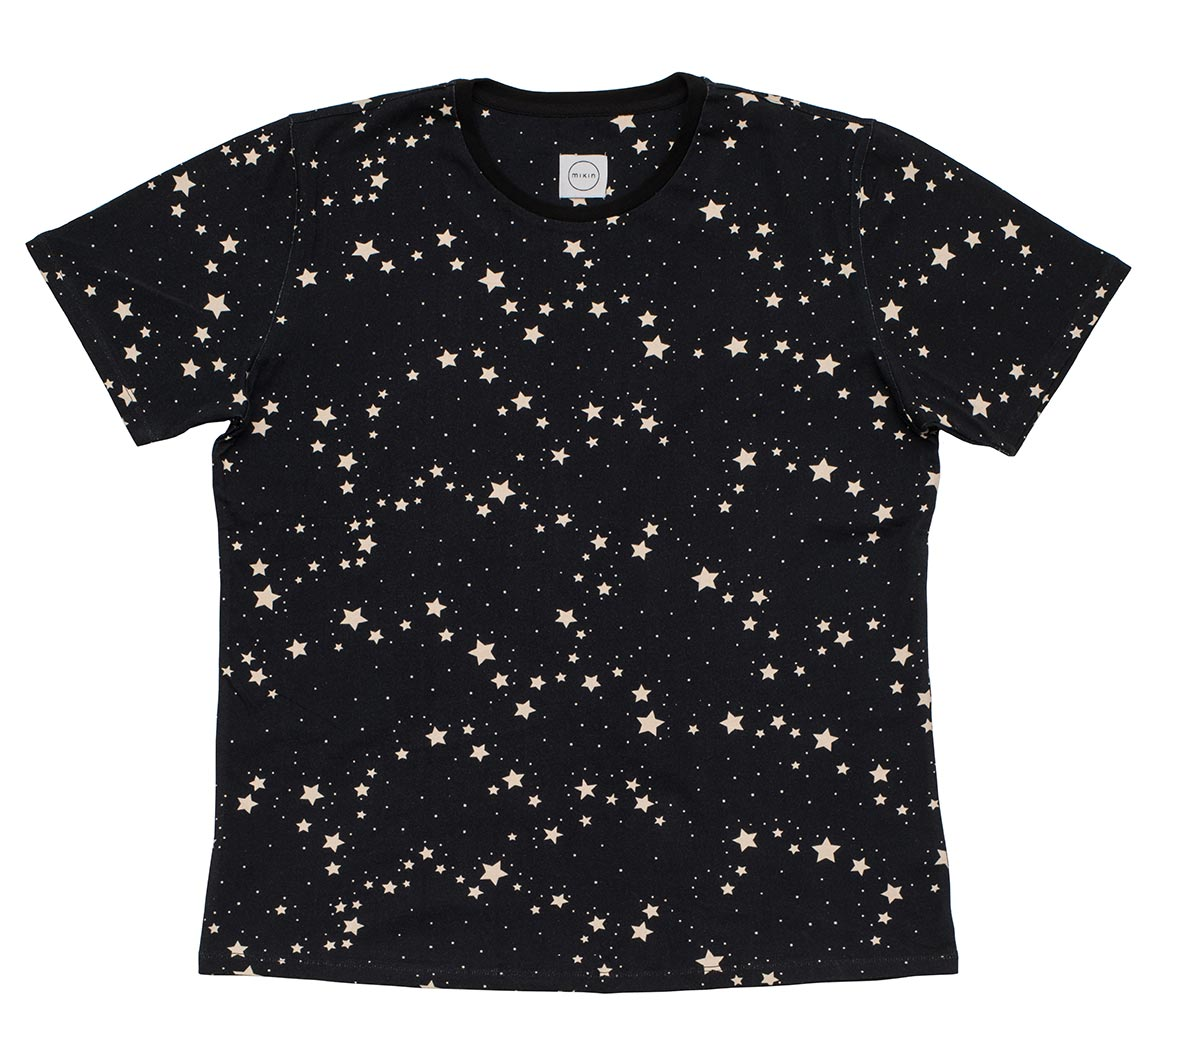 Stella Stars Black Base Unisex Pure Cotton Short Sleeve T-shirt